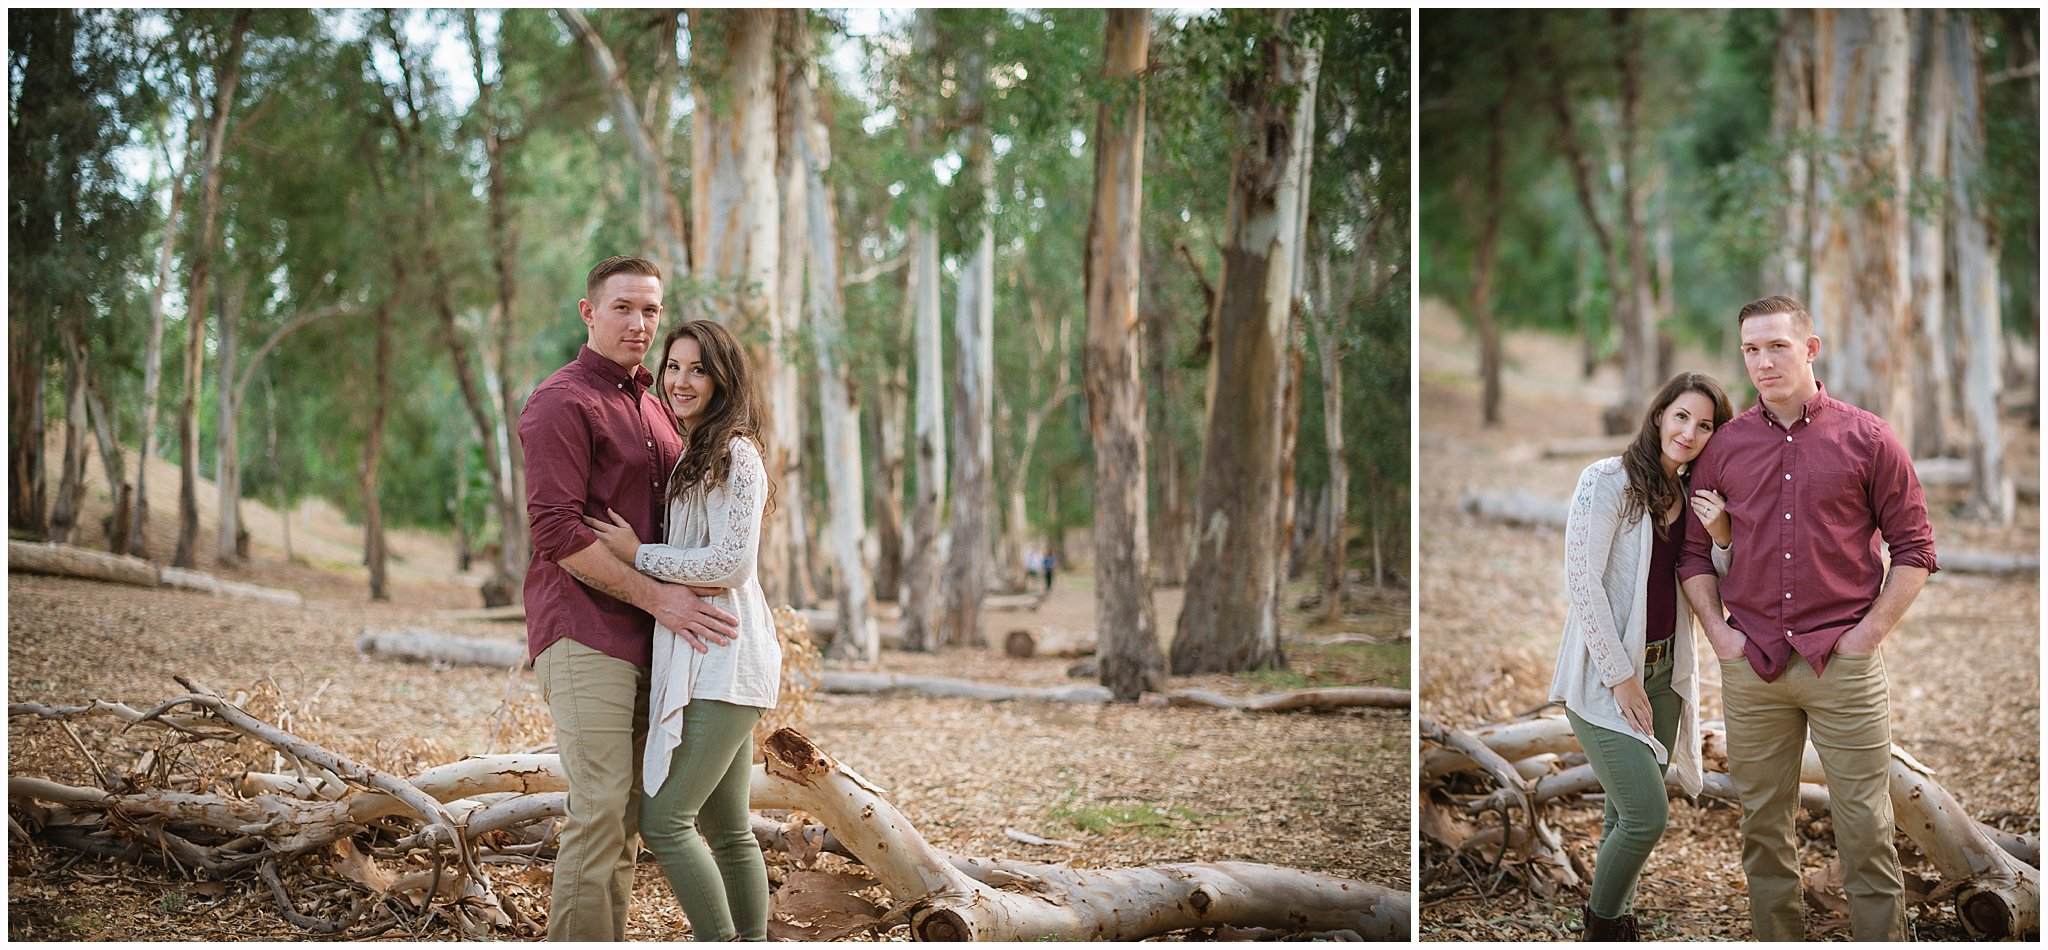 brittany-humes-photography-glen-arbor-park.jpg